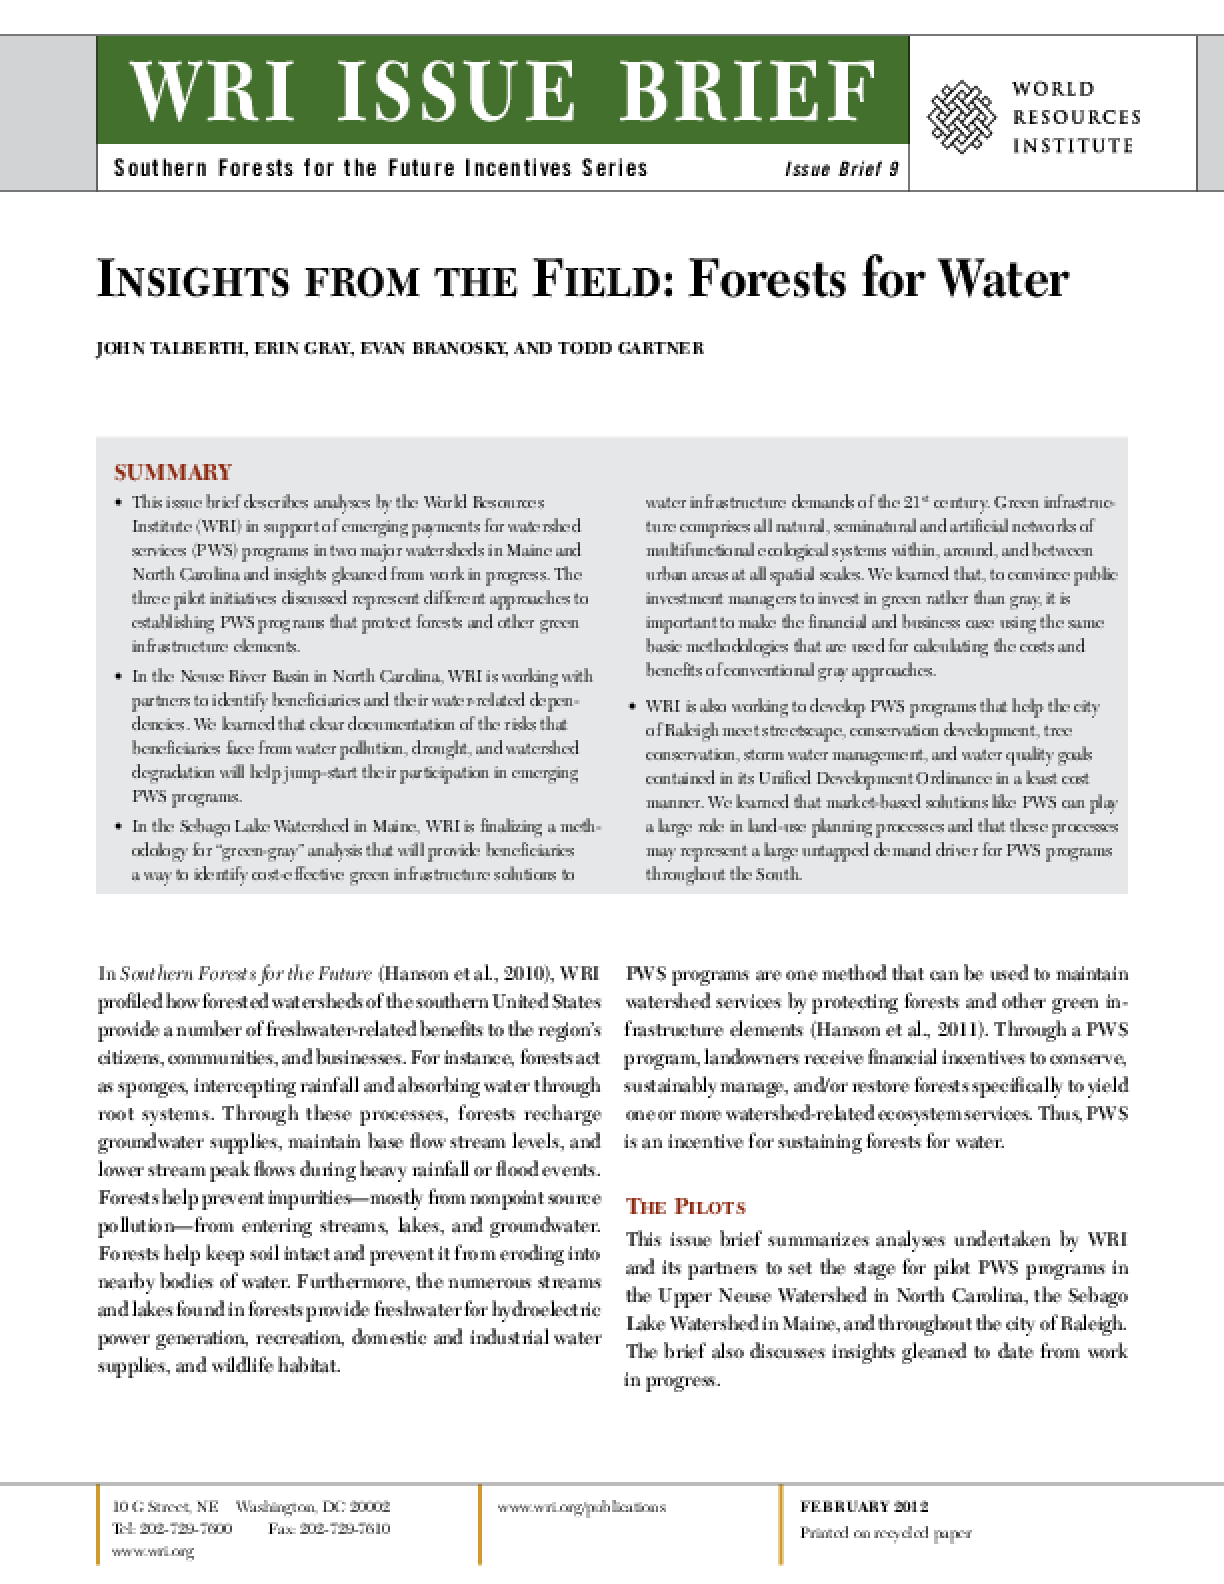 Insights from the Field: Forests for Water